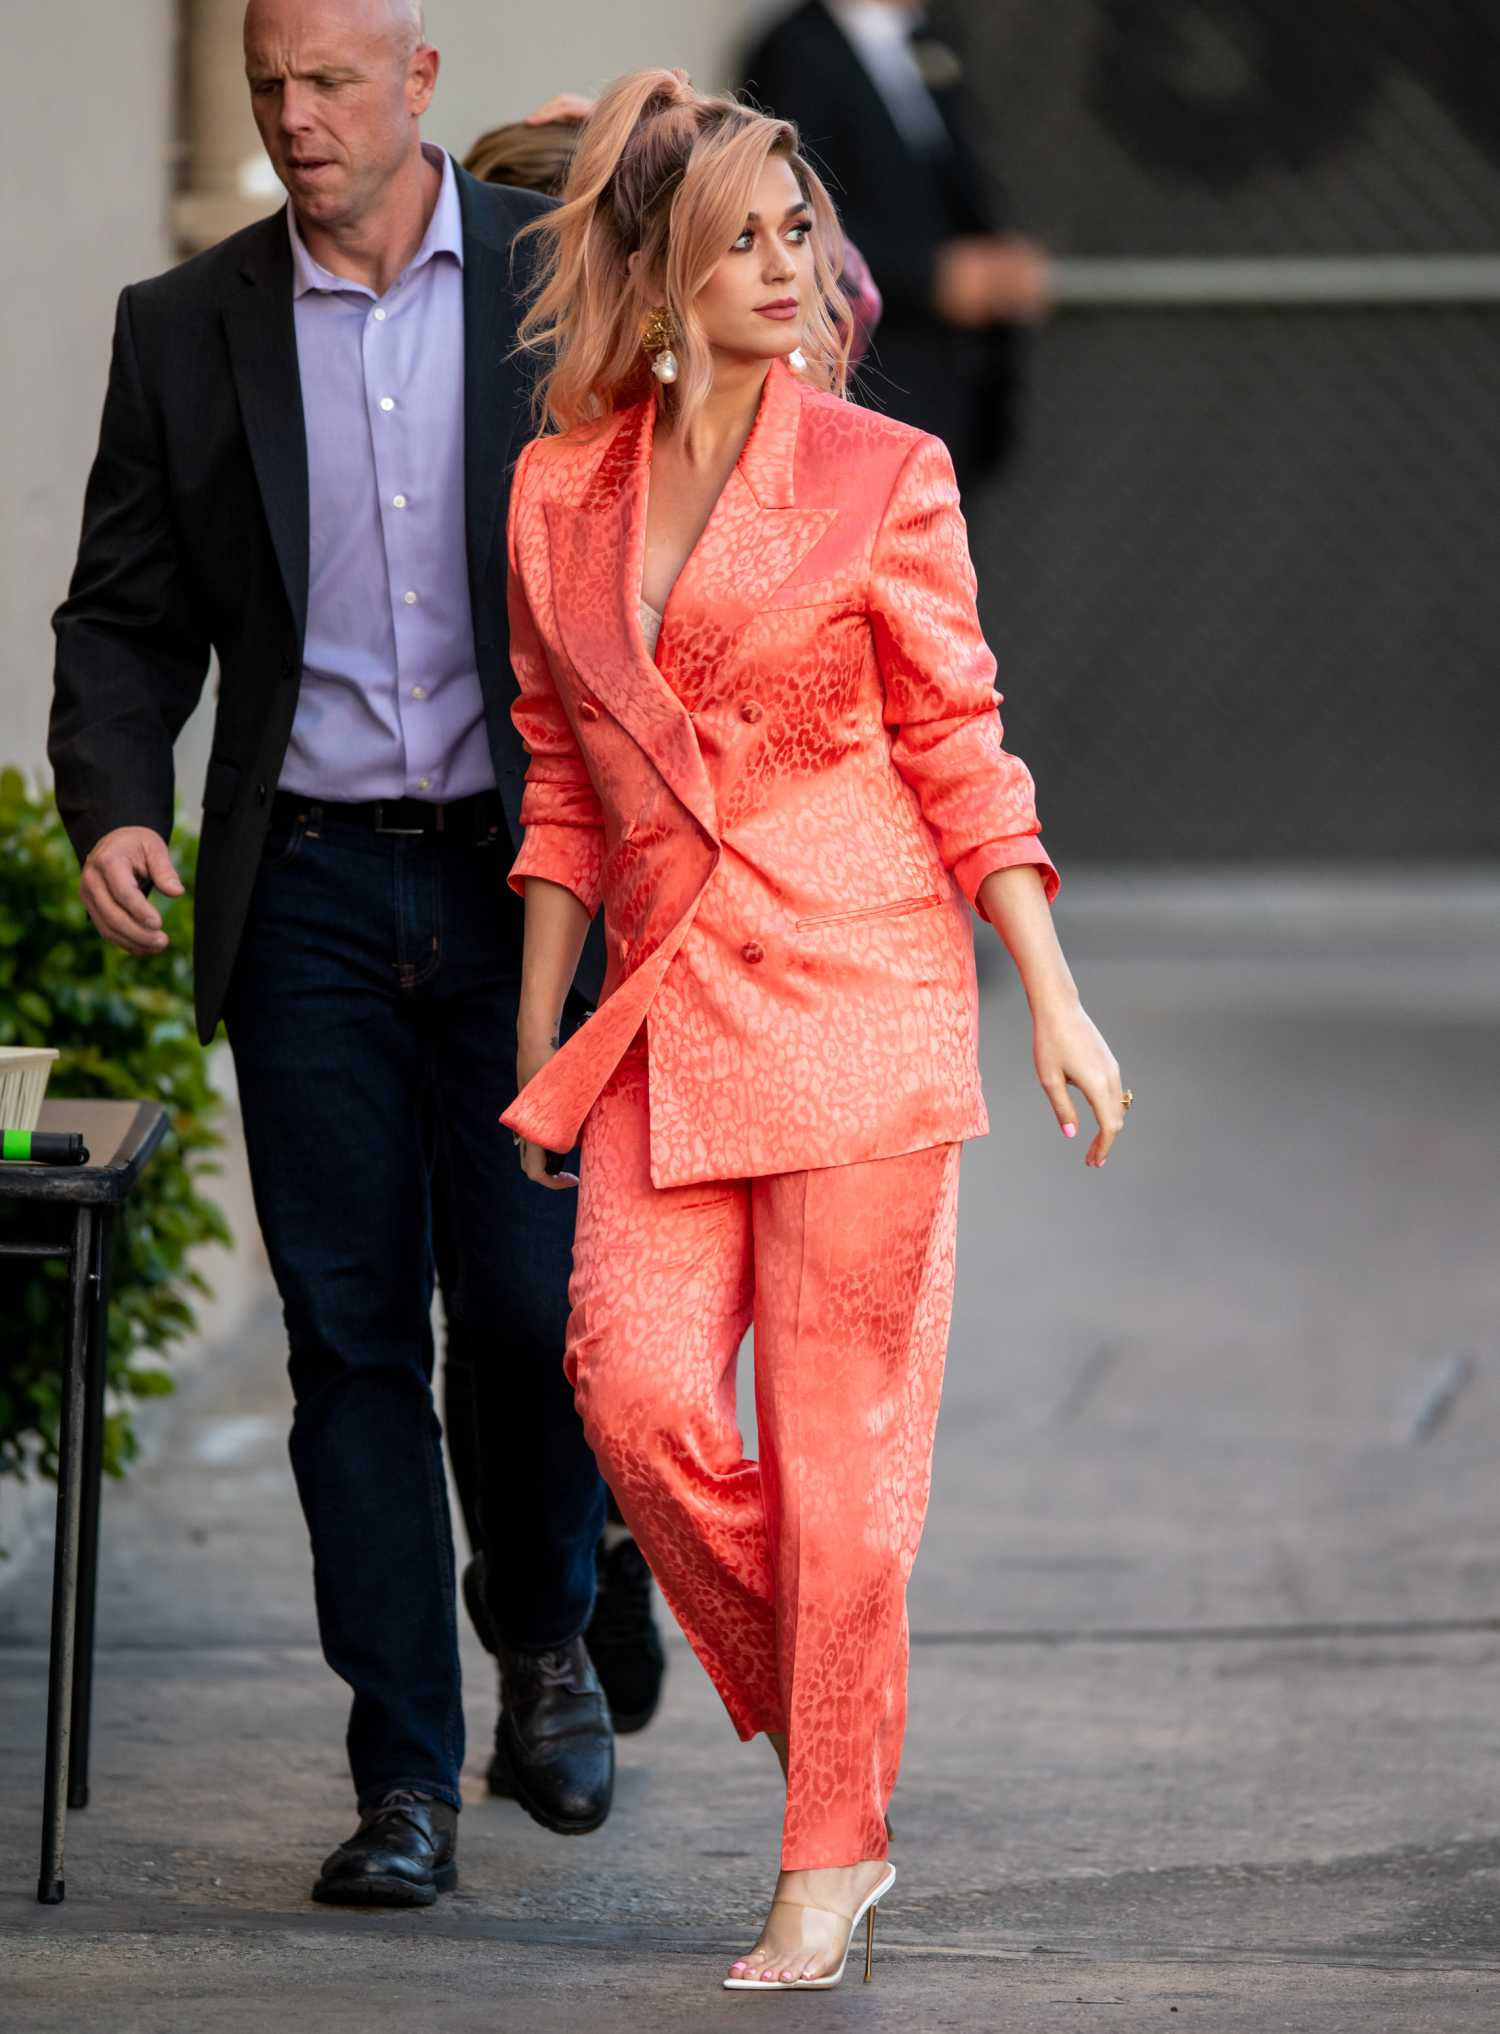 Katy Perry In A Red Suit Arrives At The Jimmy Kimmel Live